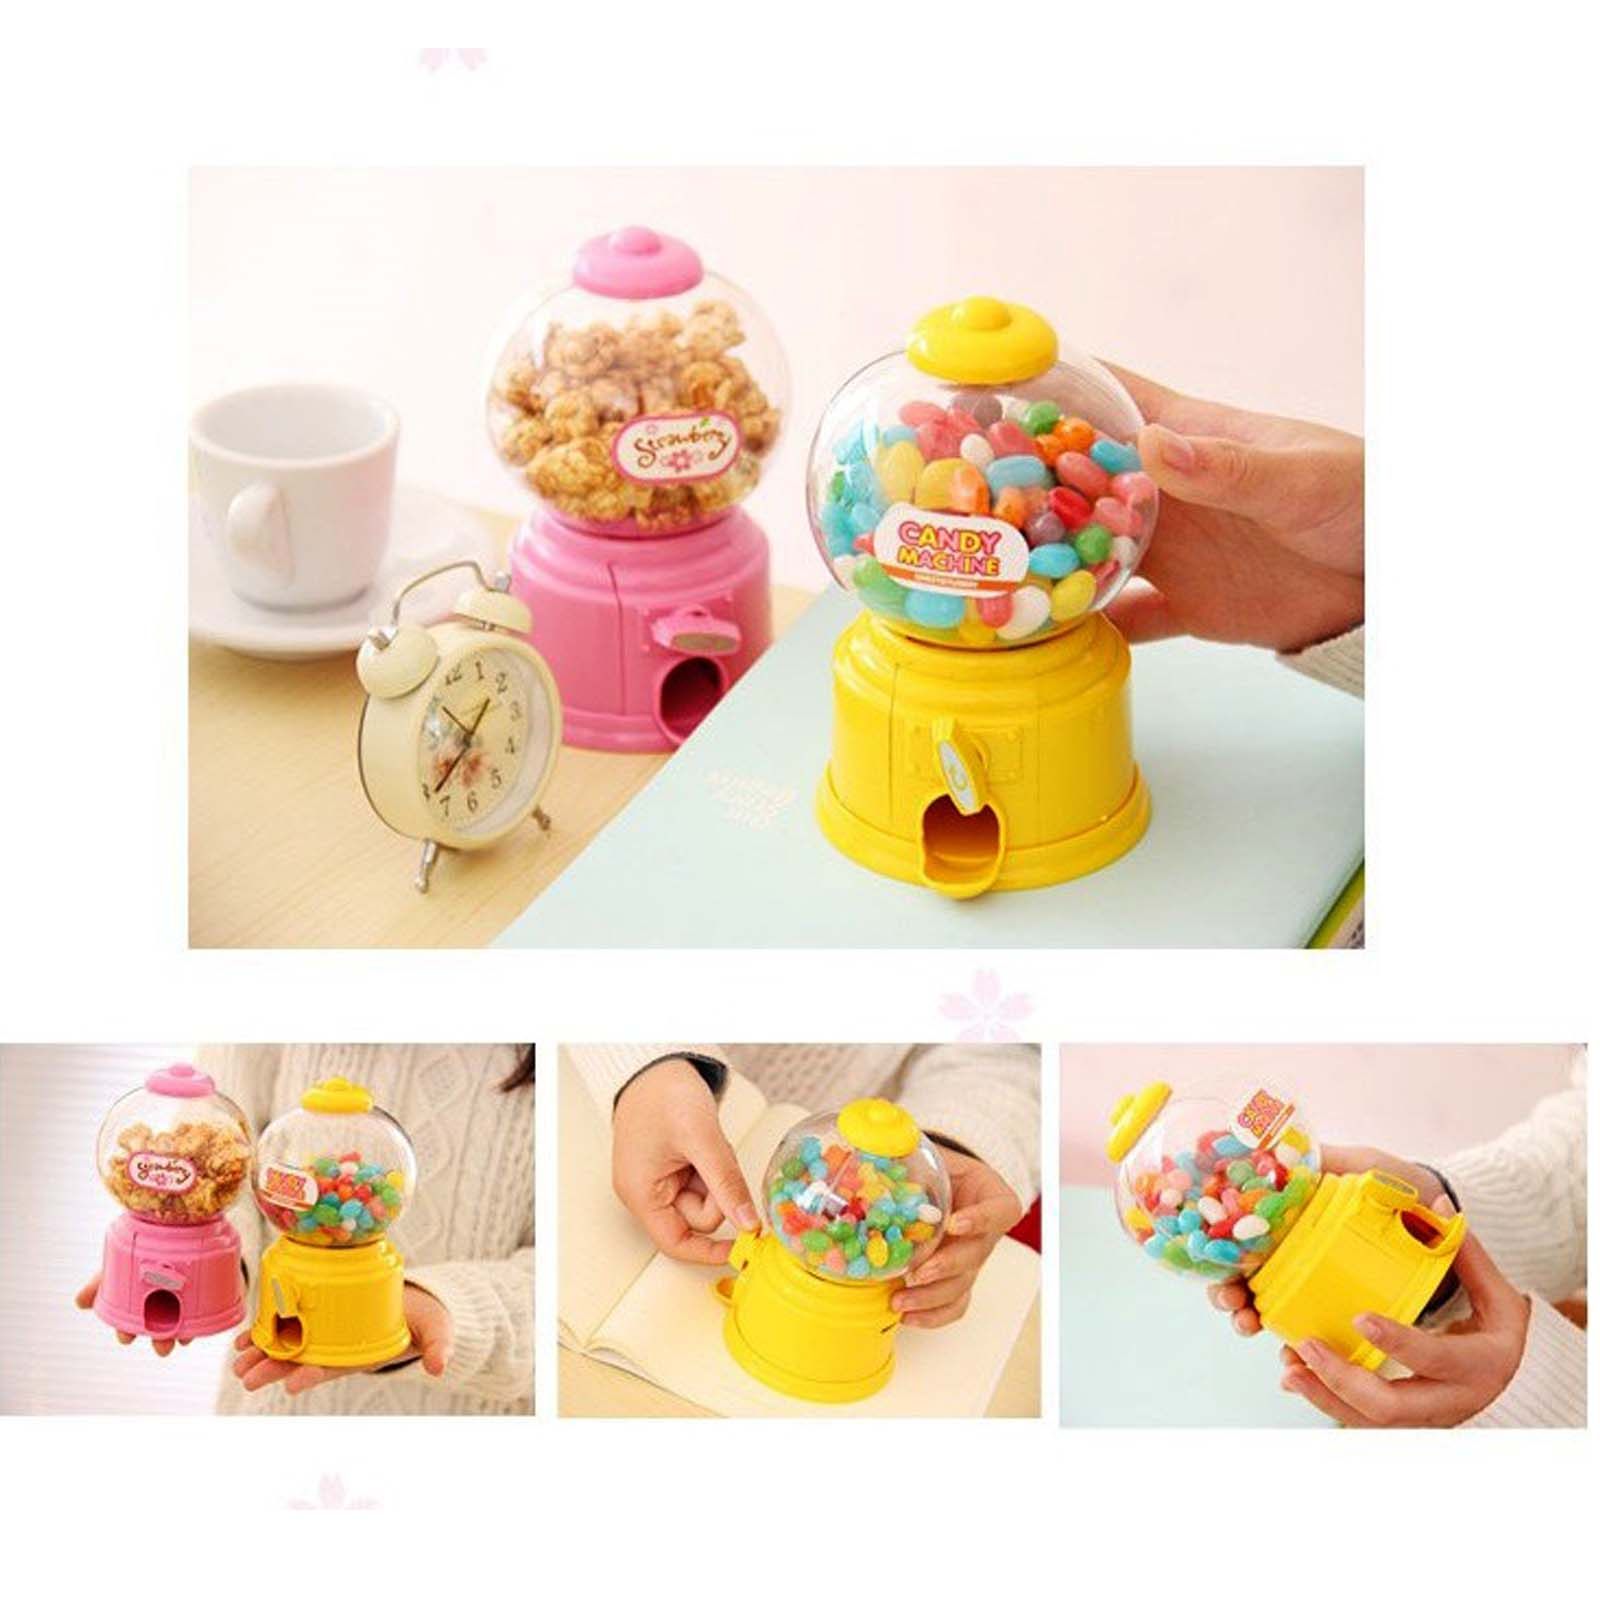 New Cute Sweets Mini Candy Gumball Dispenser Vending Machine Saving Bank Coin Kids Toy